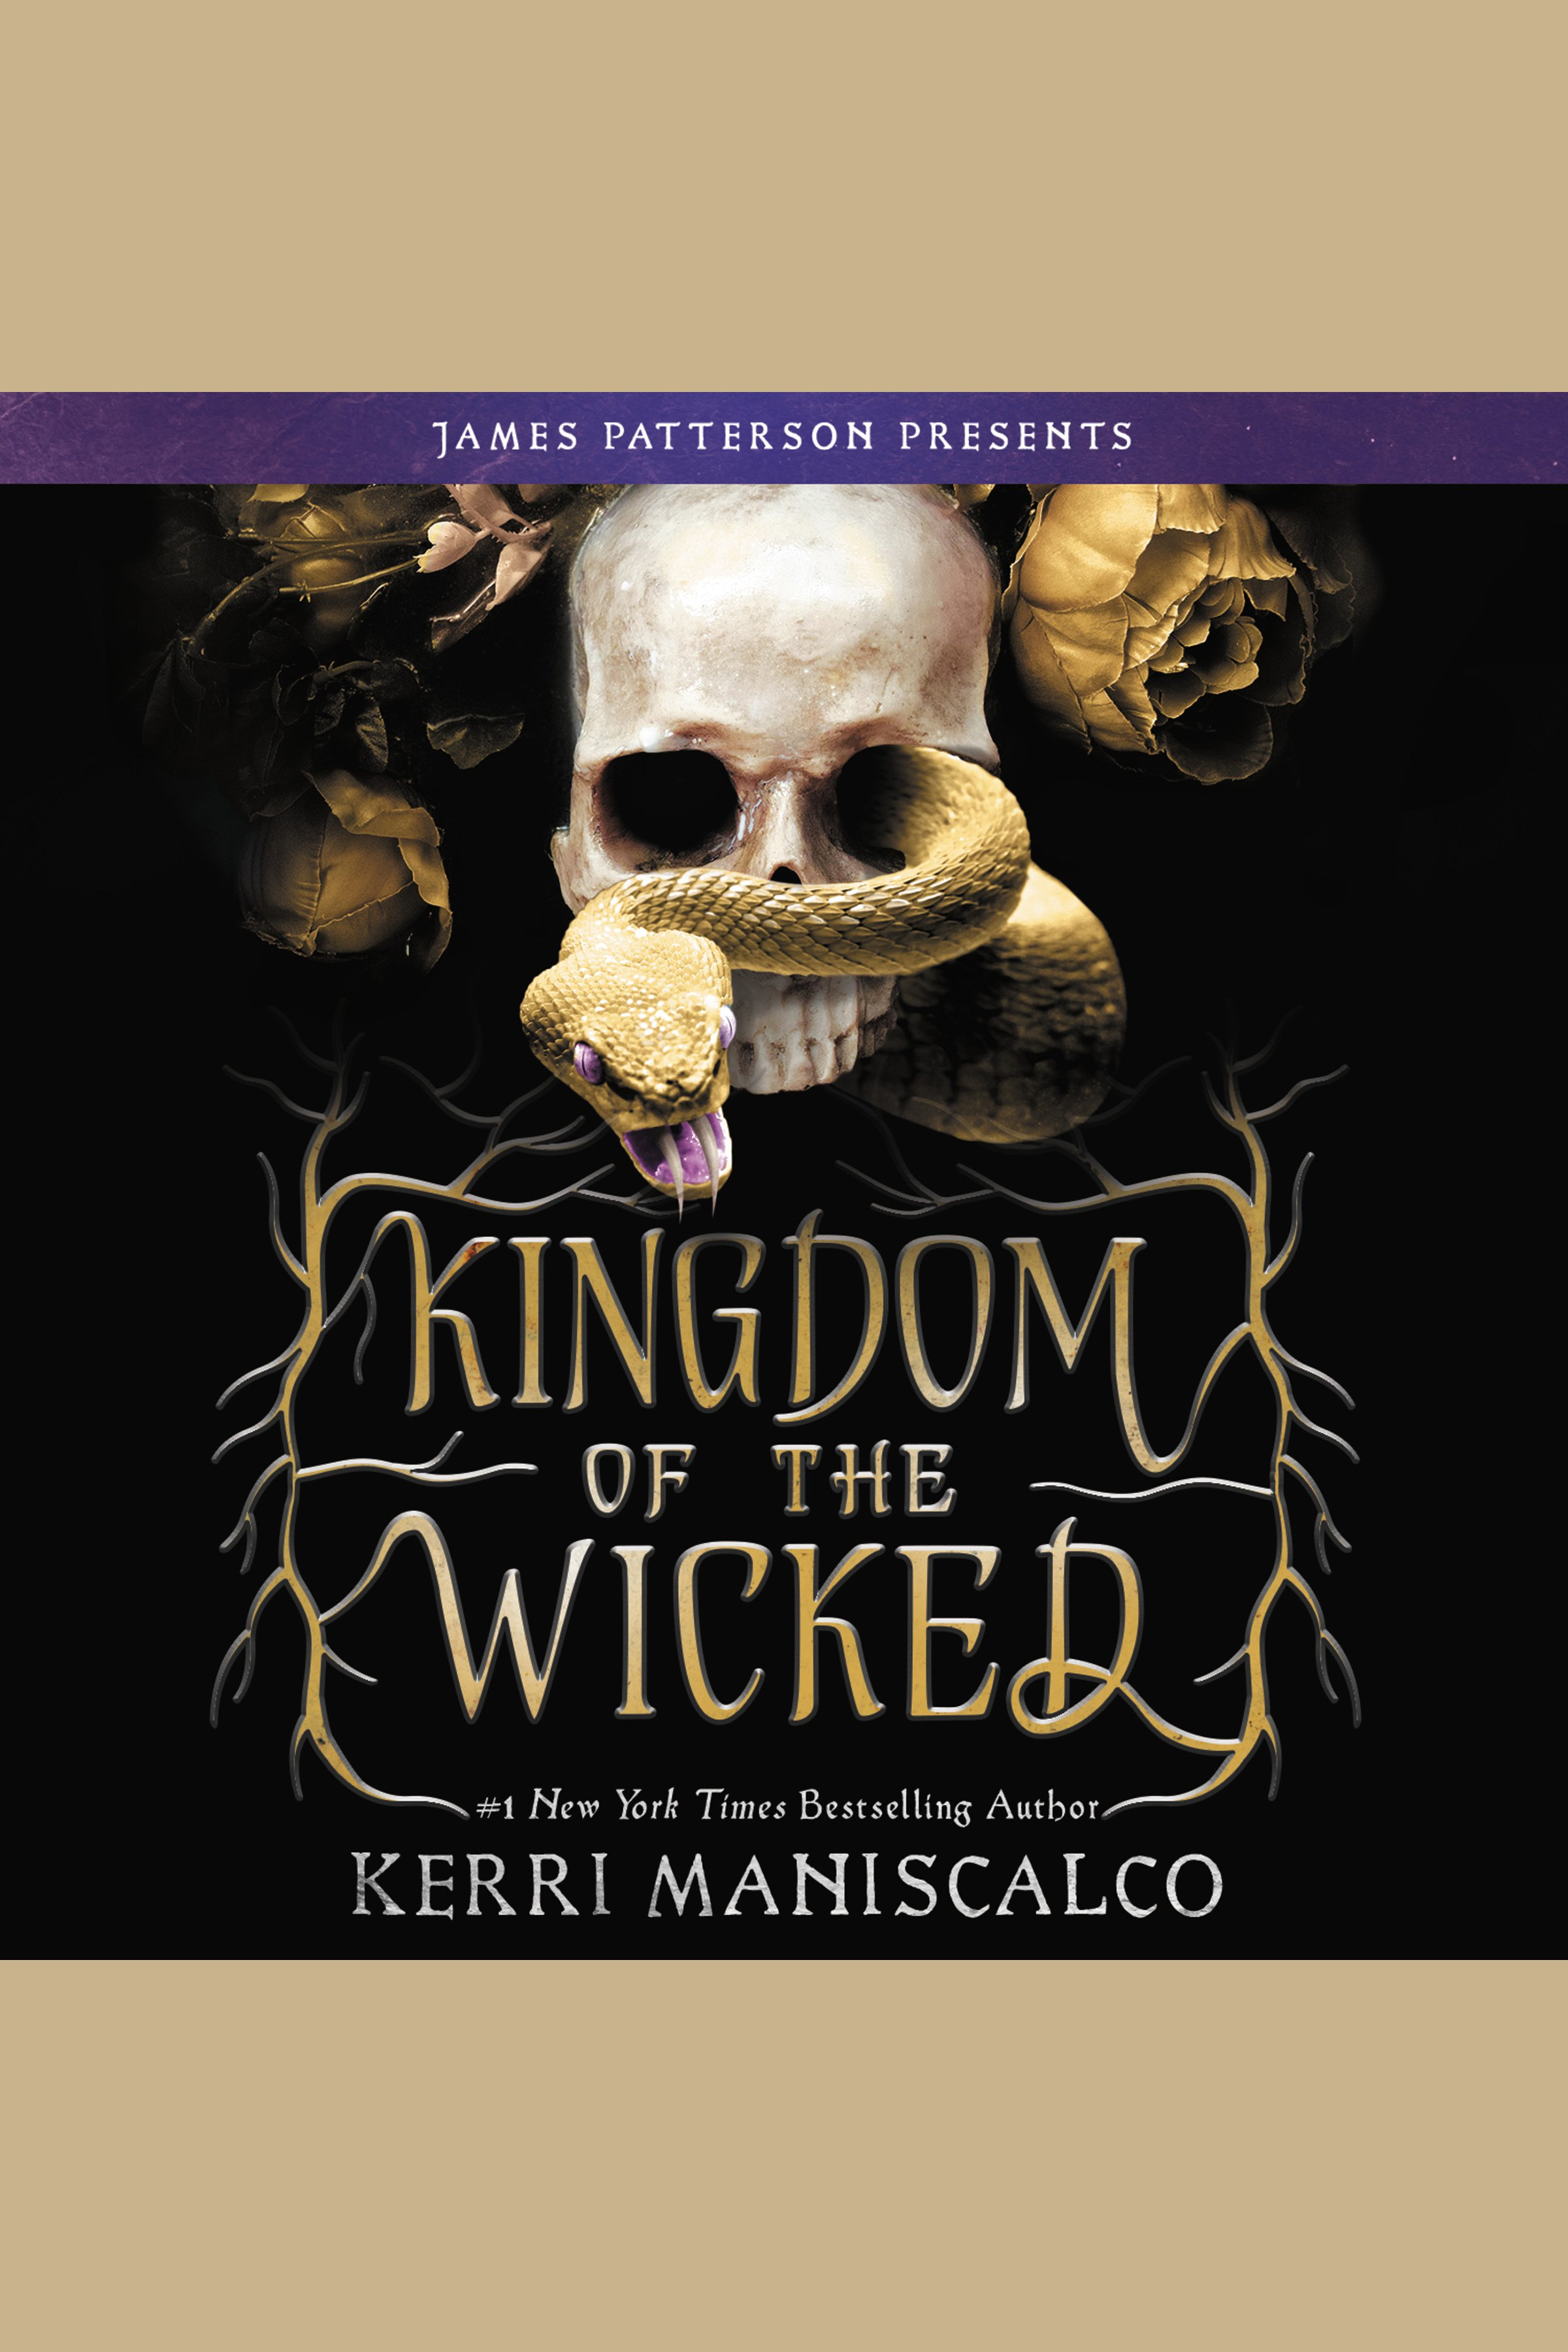 Cover Image of Kingdom of the Wicked